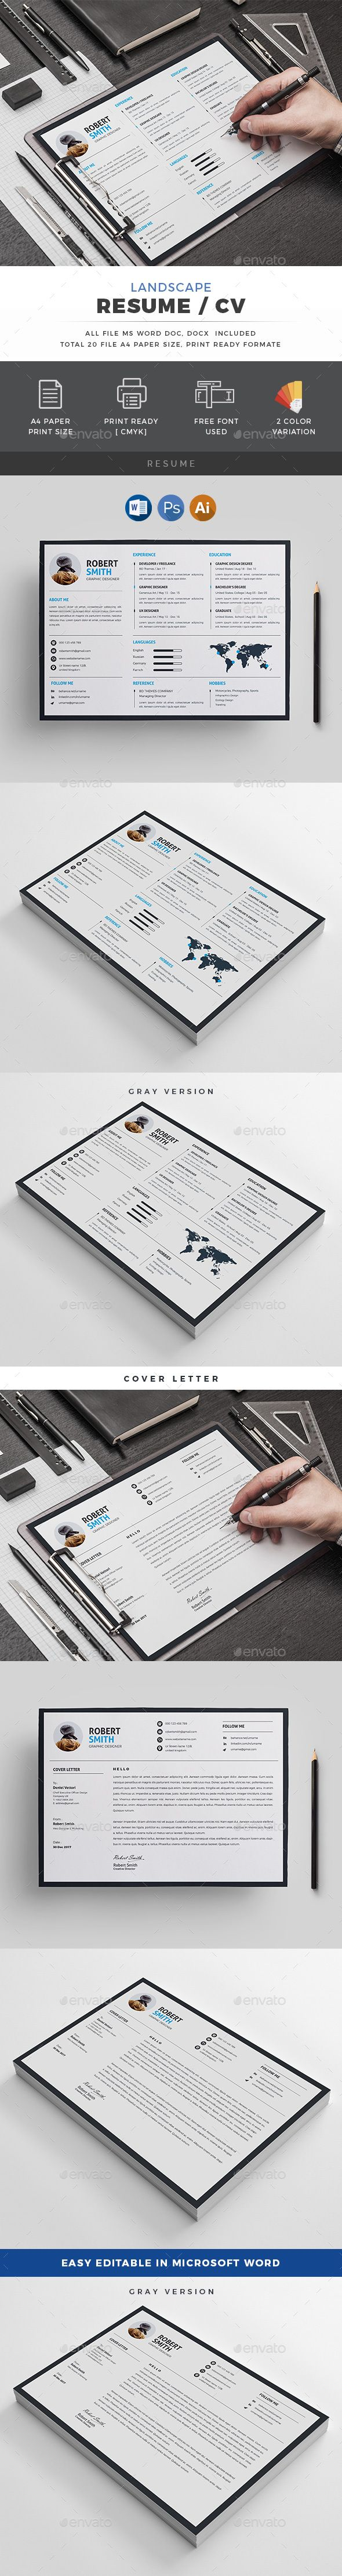 Landscape Resume | Template, Creative and Stationery design